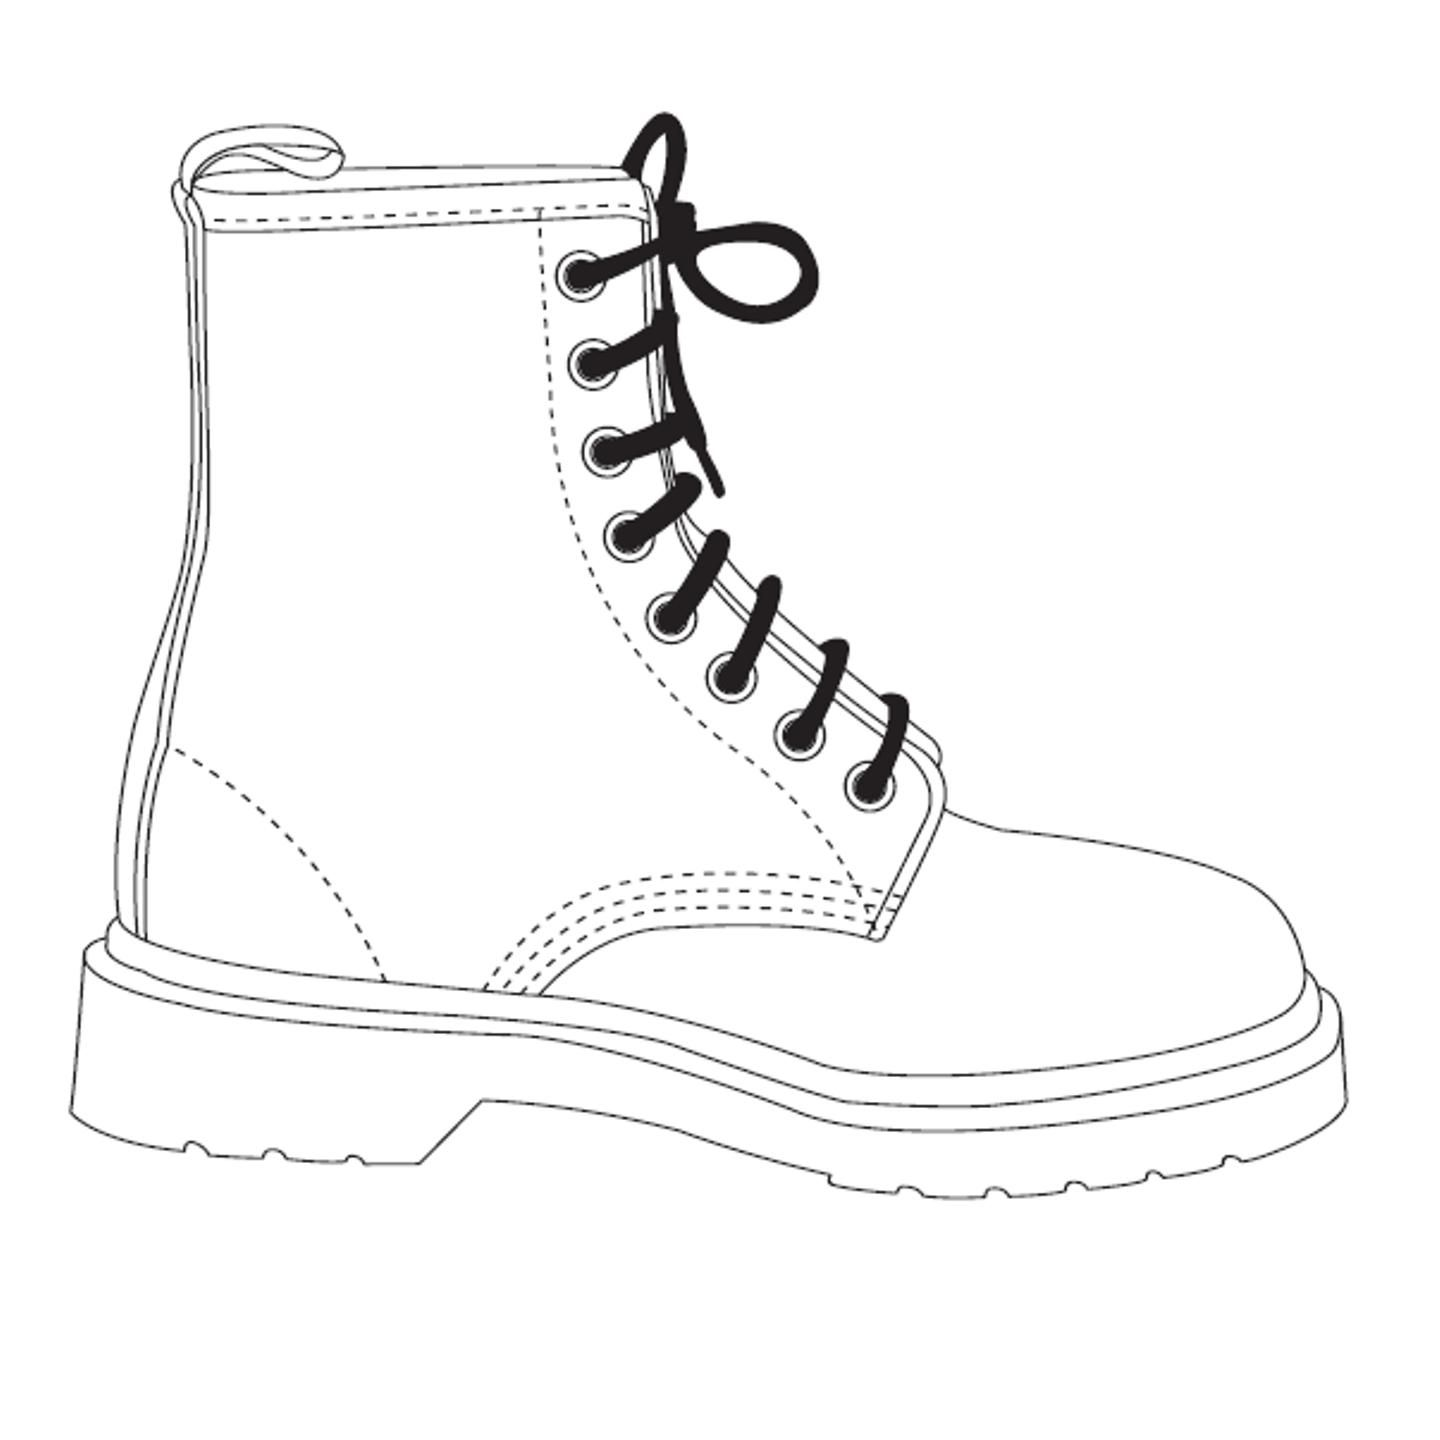 Image for the resource: Doc Marten Template | Templates for Cards ...